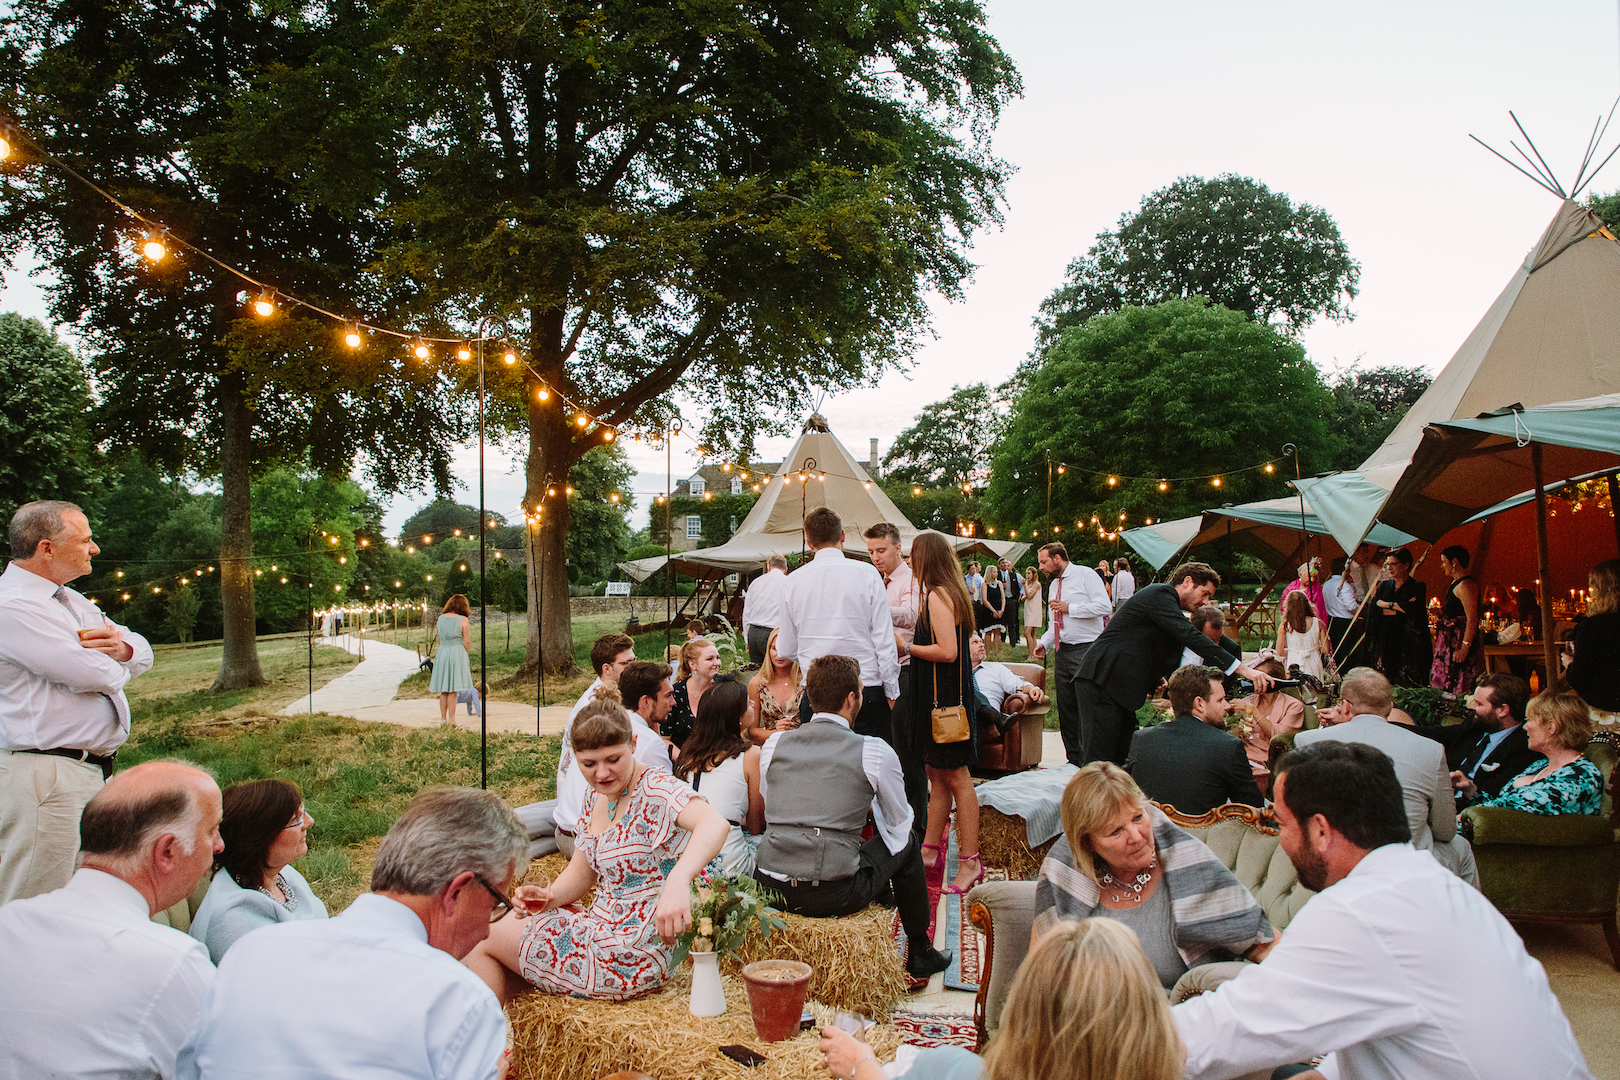 Brennan & Tom's PapaKåta Teepee Wedding, Cornwell Manor: Alfresco Chill Out Area